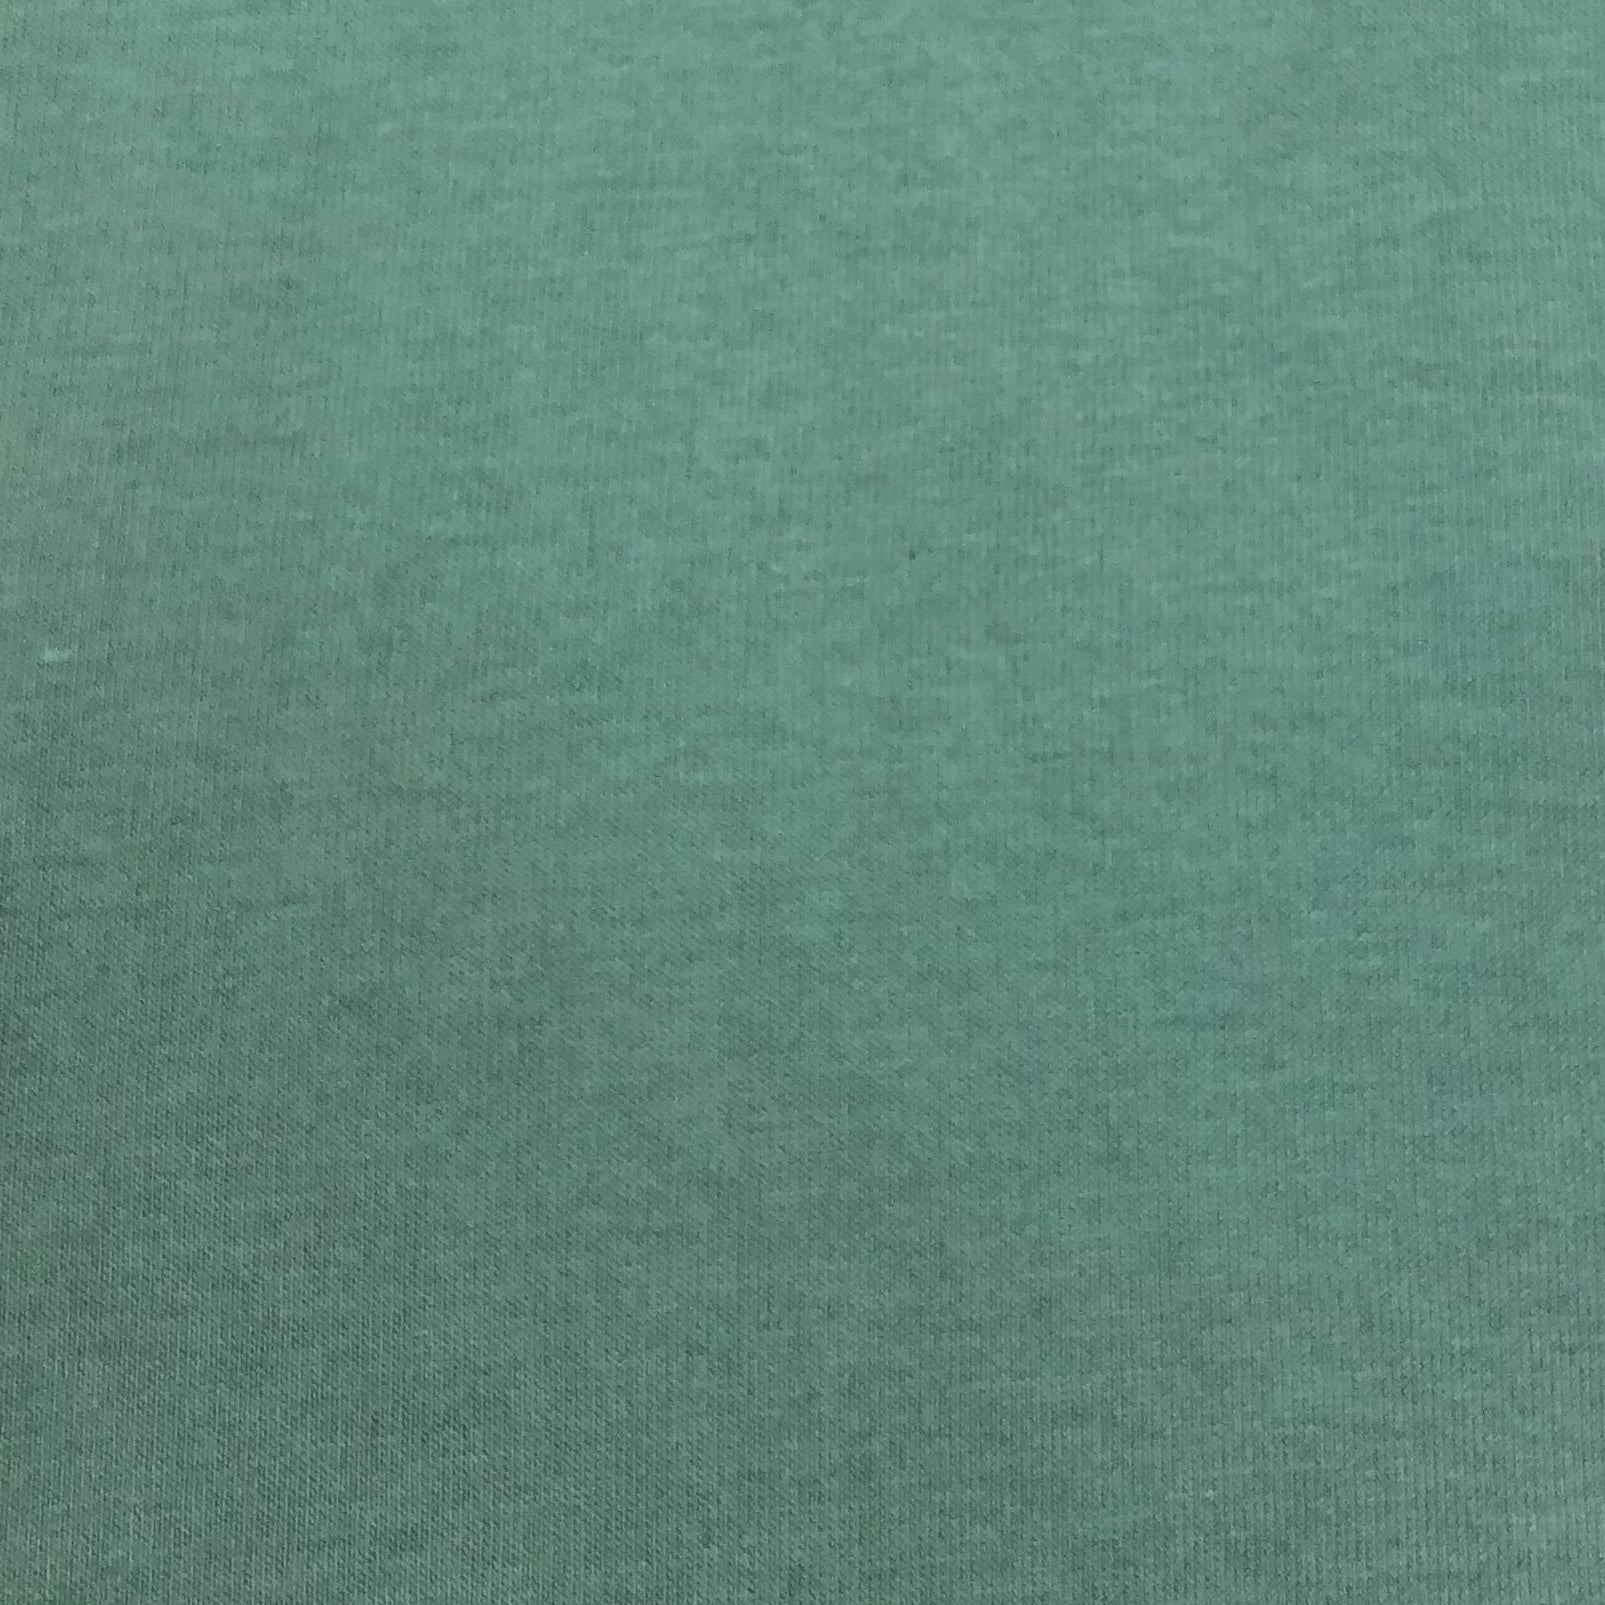 Teal Super Soft Knit Jersey